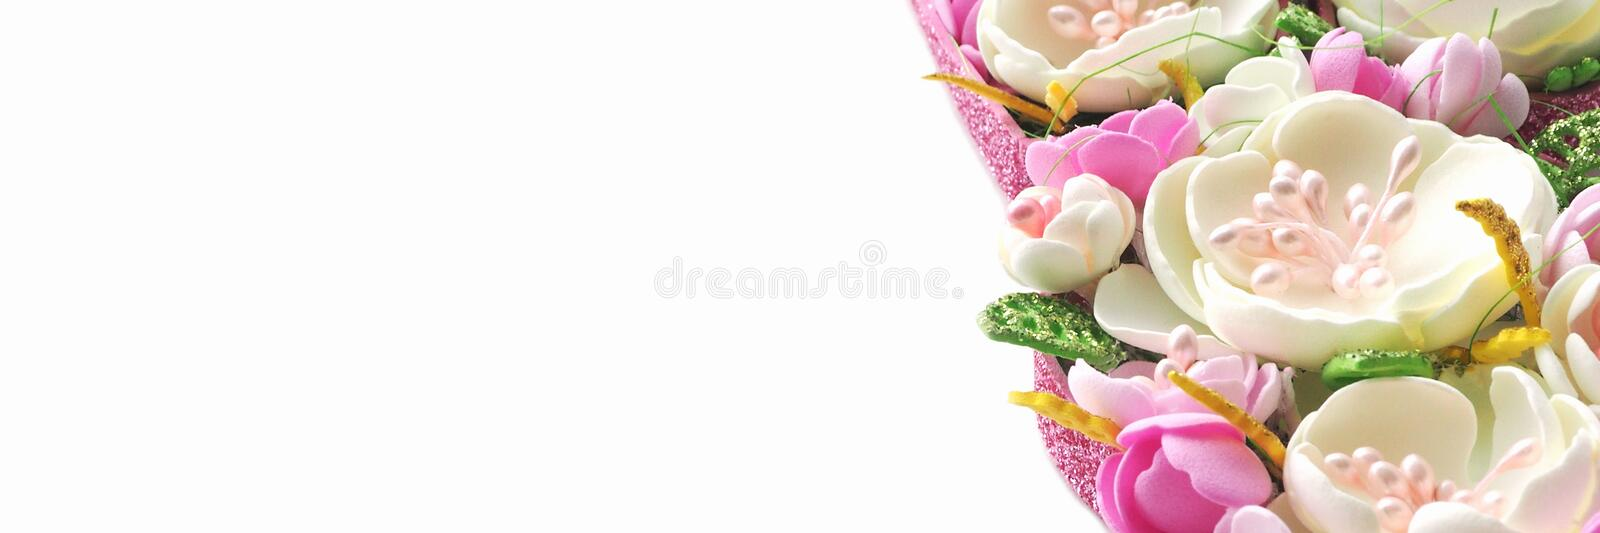 Banner multicolored flowers handmade pastel shades isolate on a white background in popular sizes for social networks. Copy space royalty free stock image